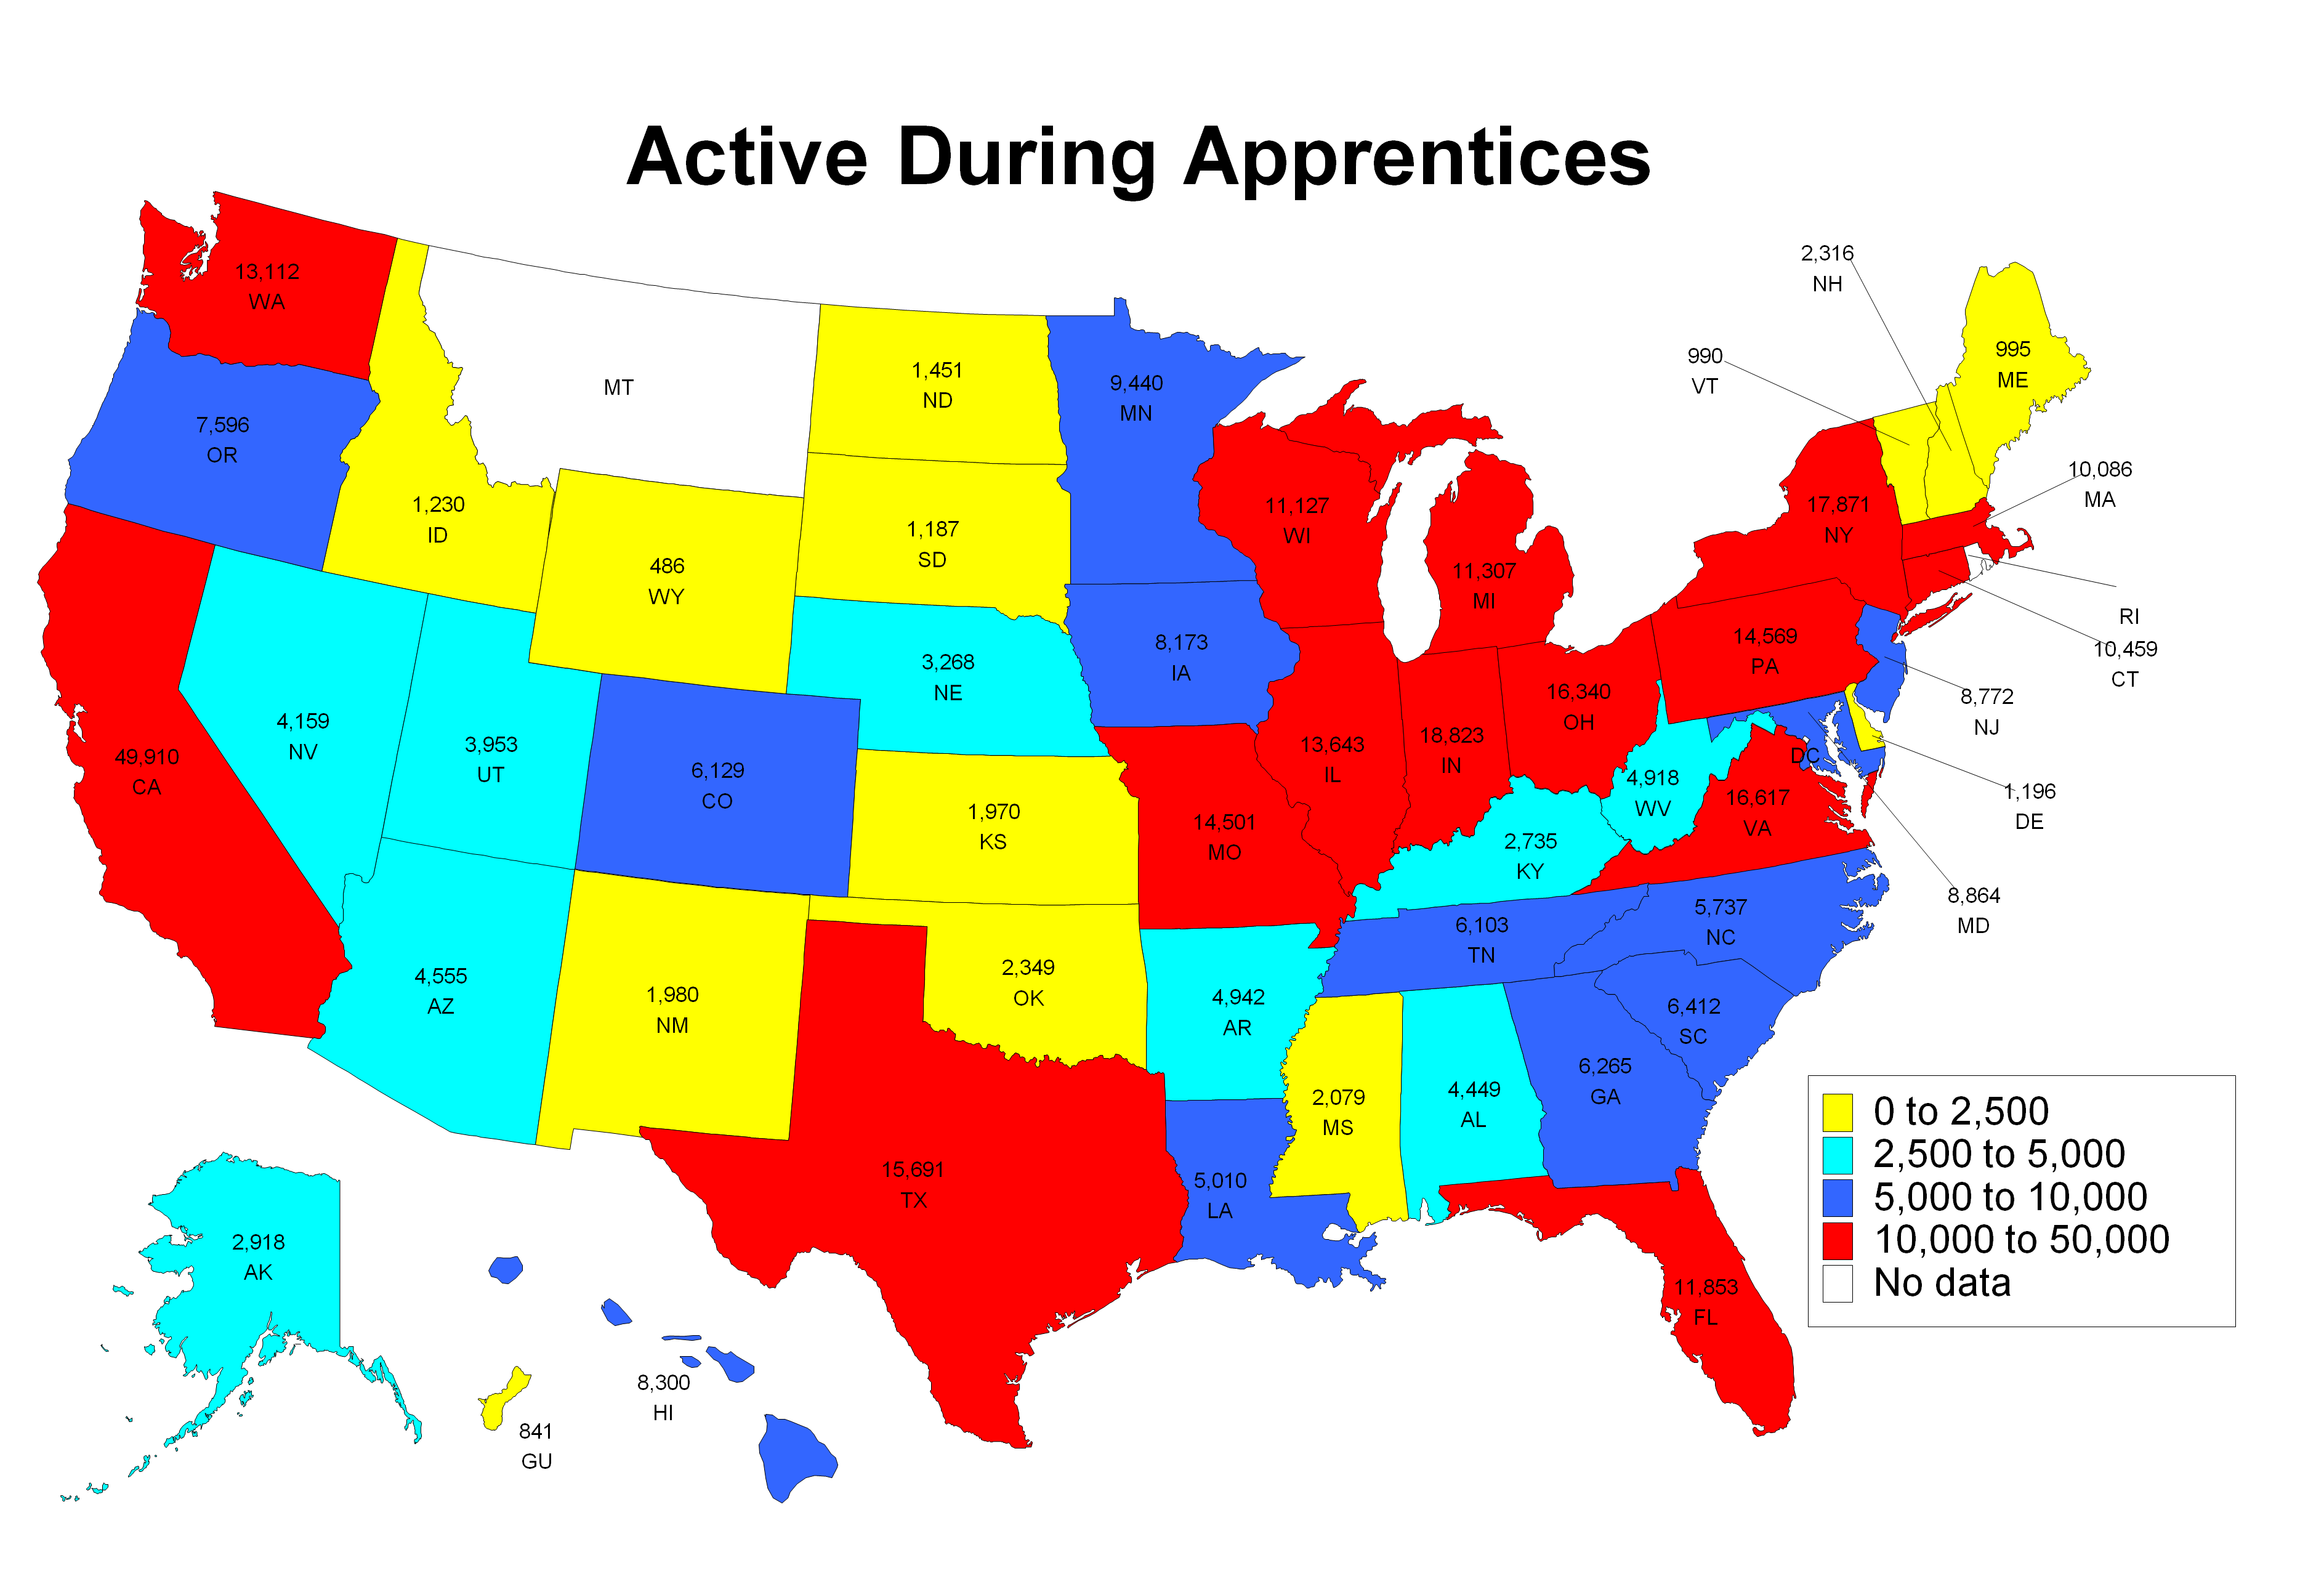 Active During Apprentices 2013